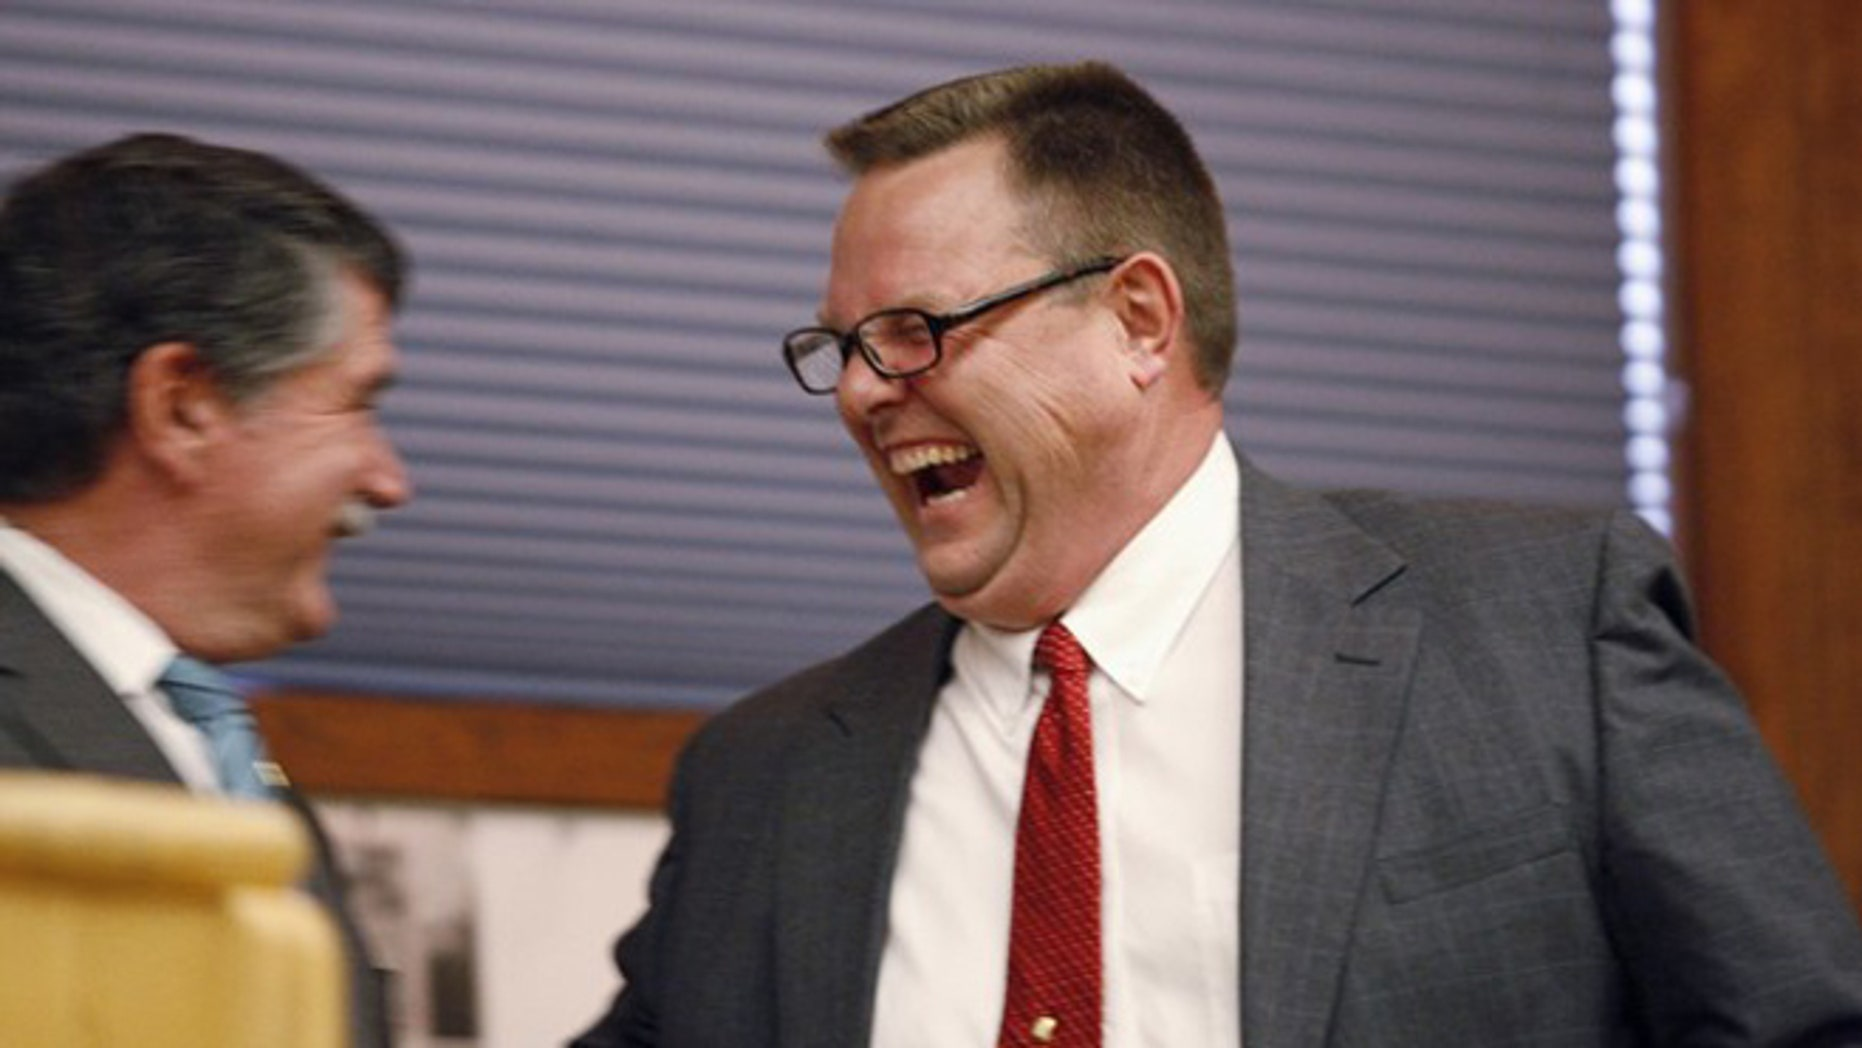 FILE: June 10, 2012: Sen. Jon Tester, D-Mont., laughs with Rep. Denny Rehberg, R-Mont., before the first debate of the 2012 election in Big Sky, Mont.